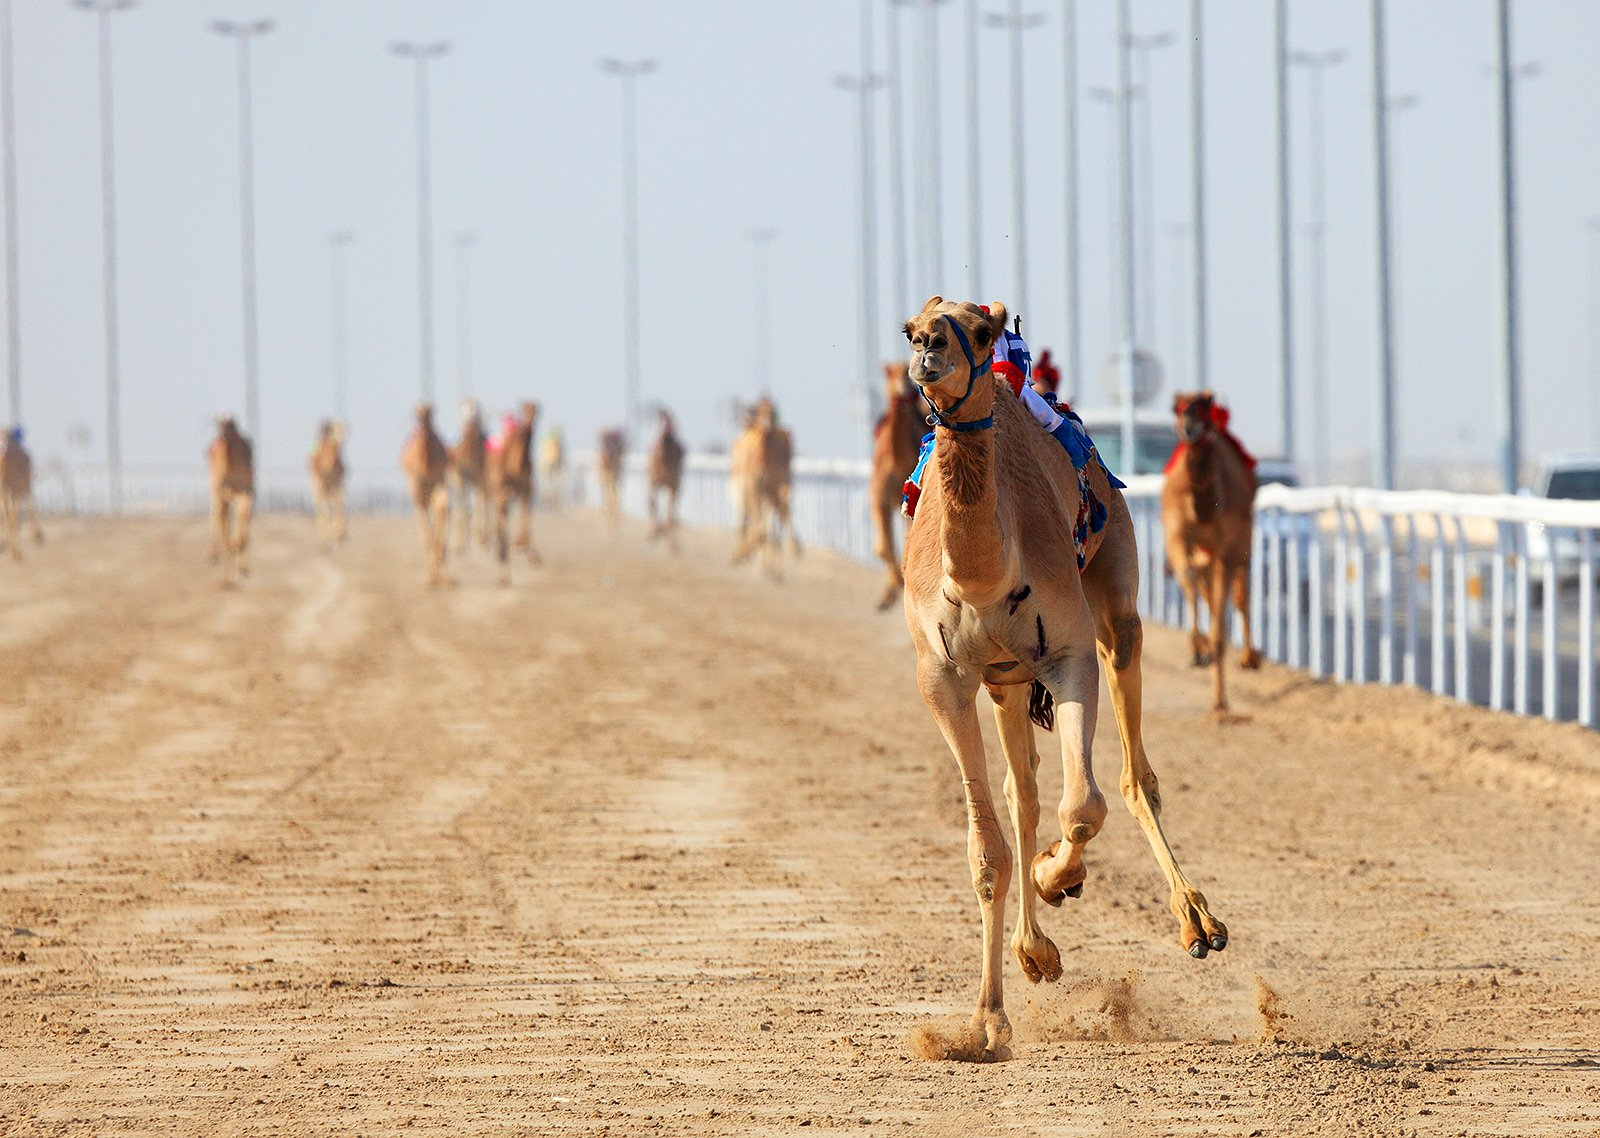 How to see Camel Races in Dubai